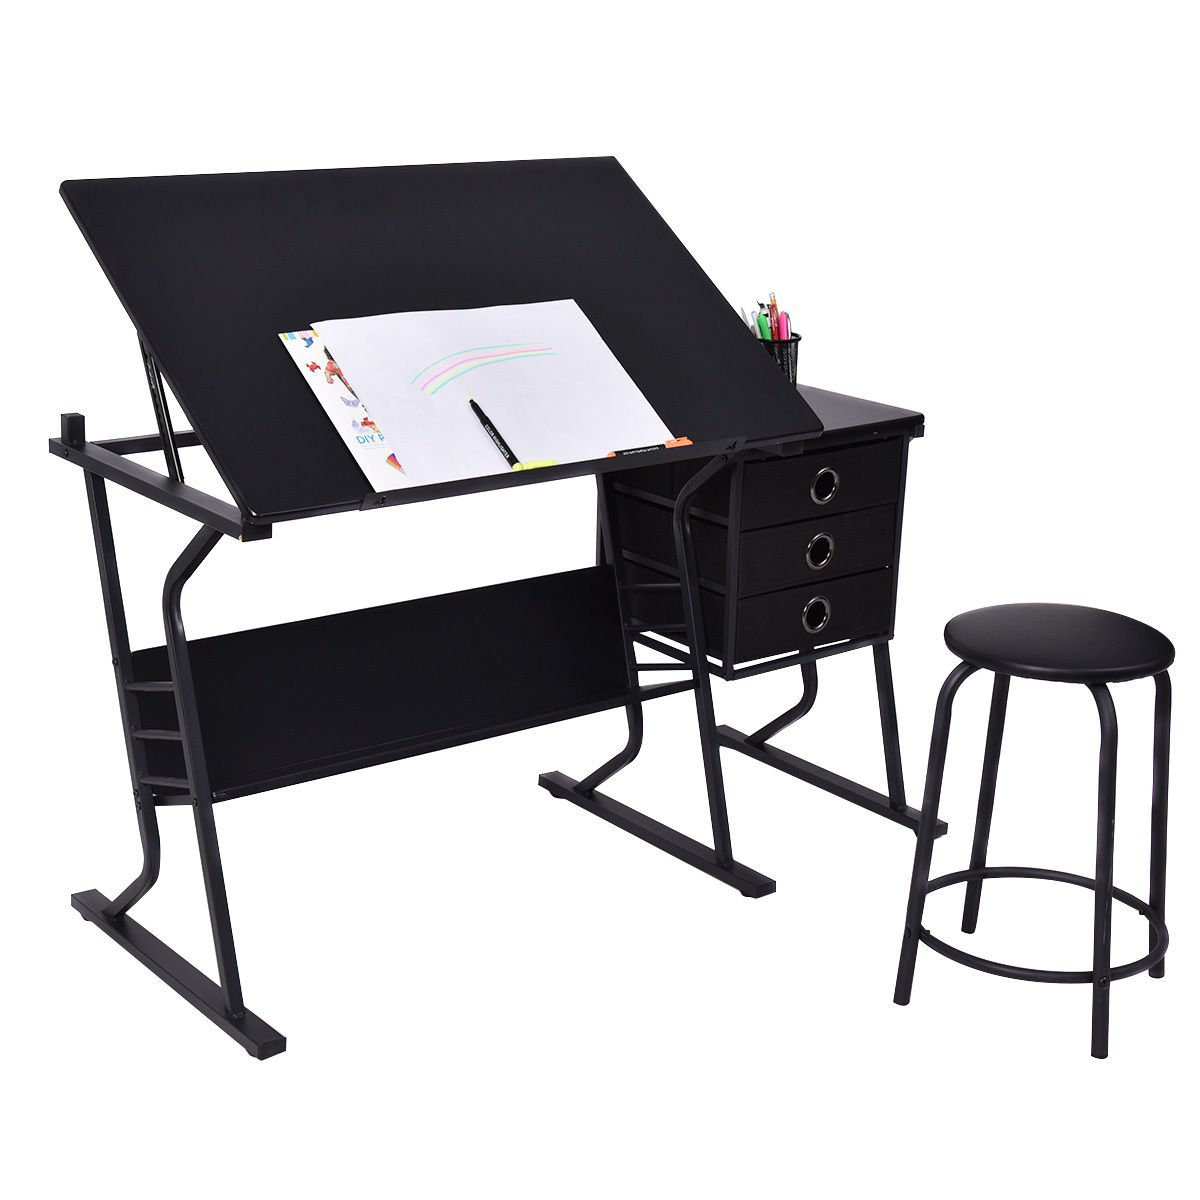 Tangkula Drafting Desk Drawing Table Adjustable with Stool and Drawers Black by Tangkula